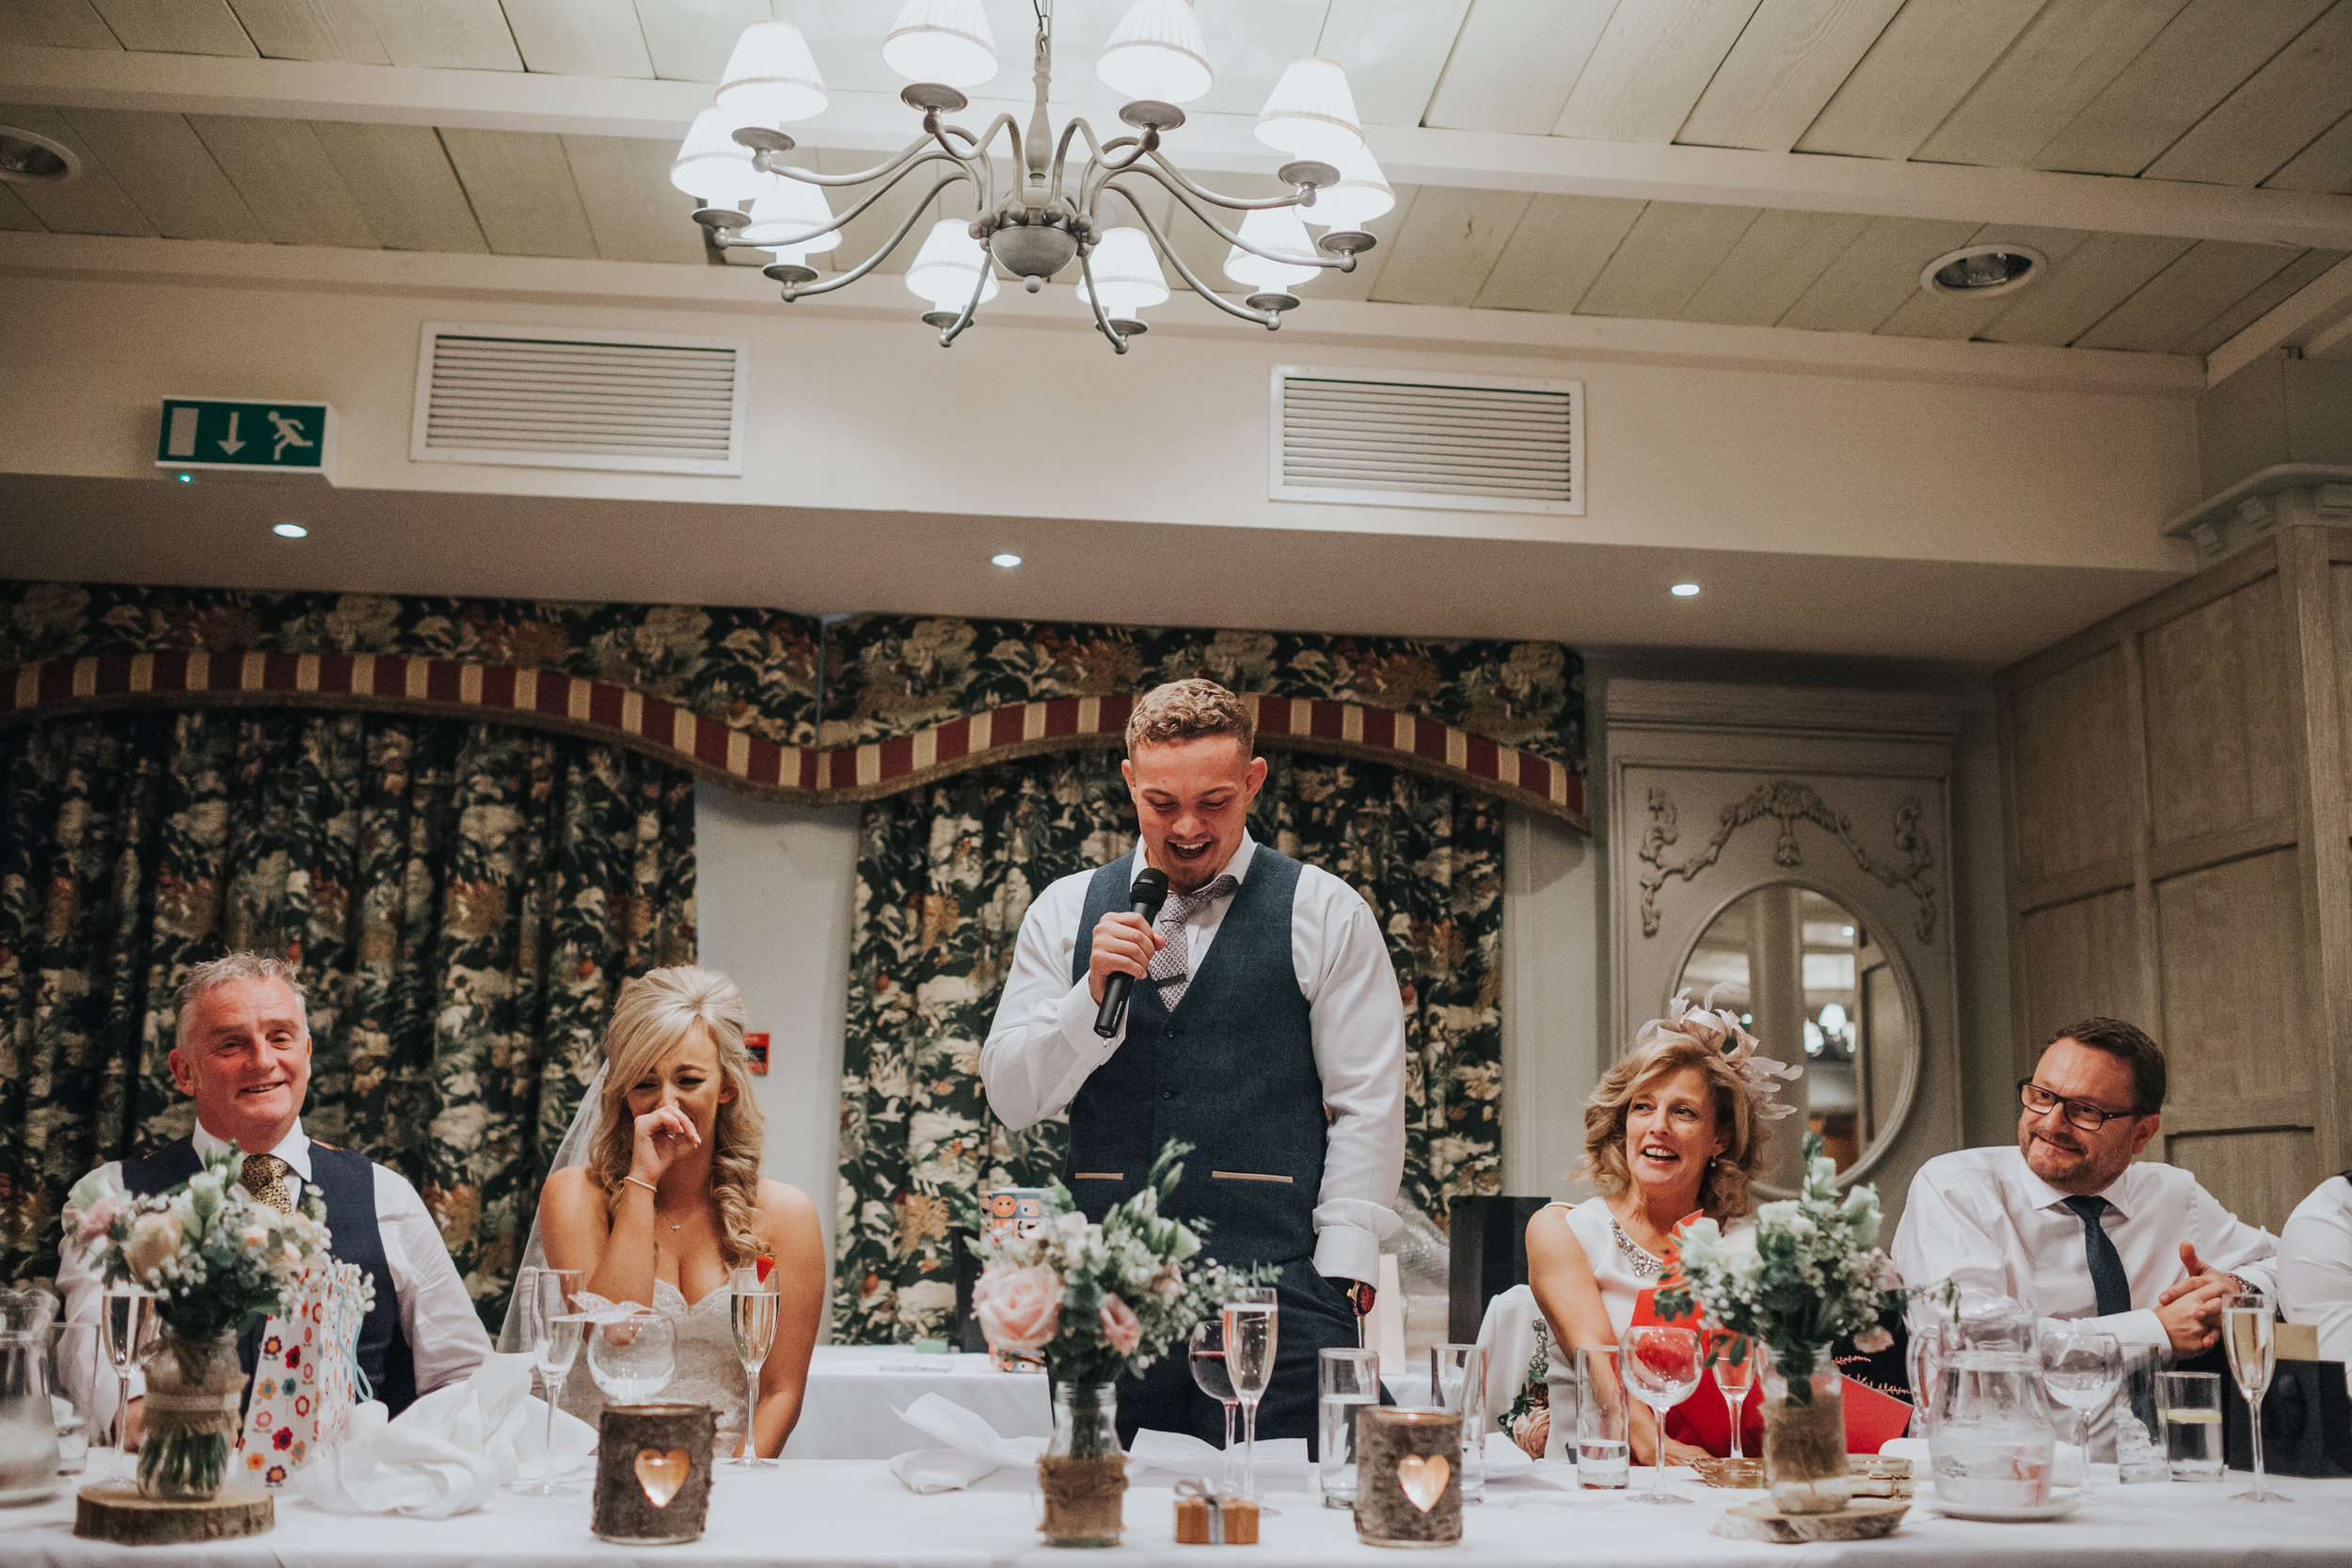 Head table laughs as the groom makes his speech.